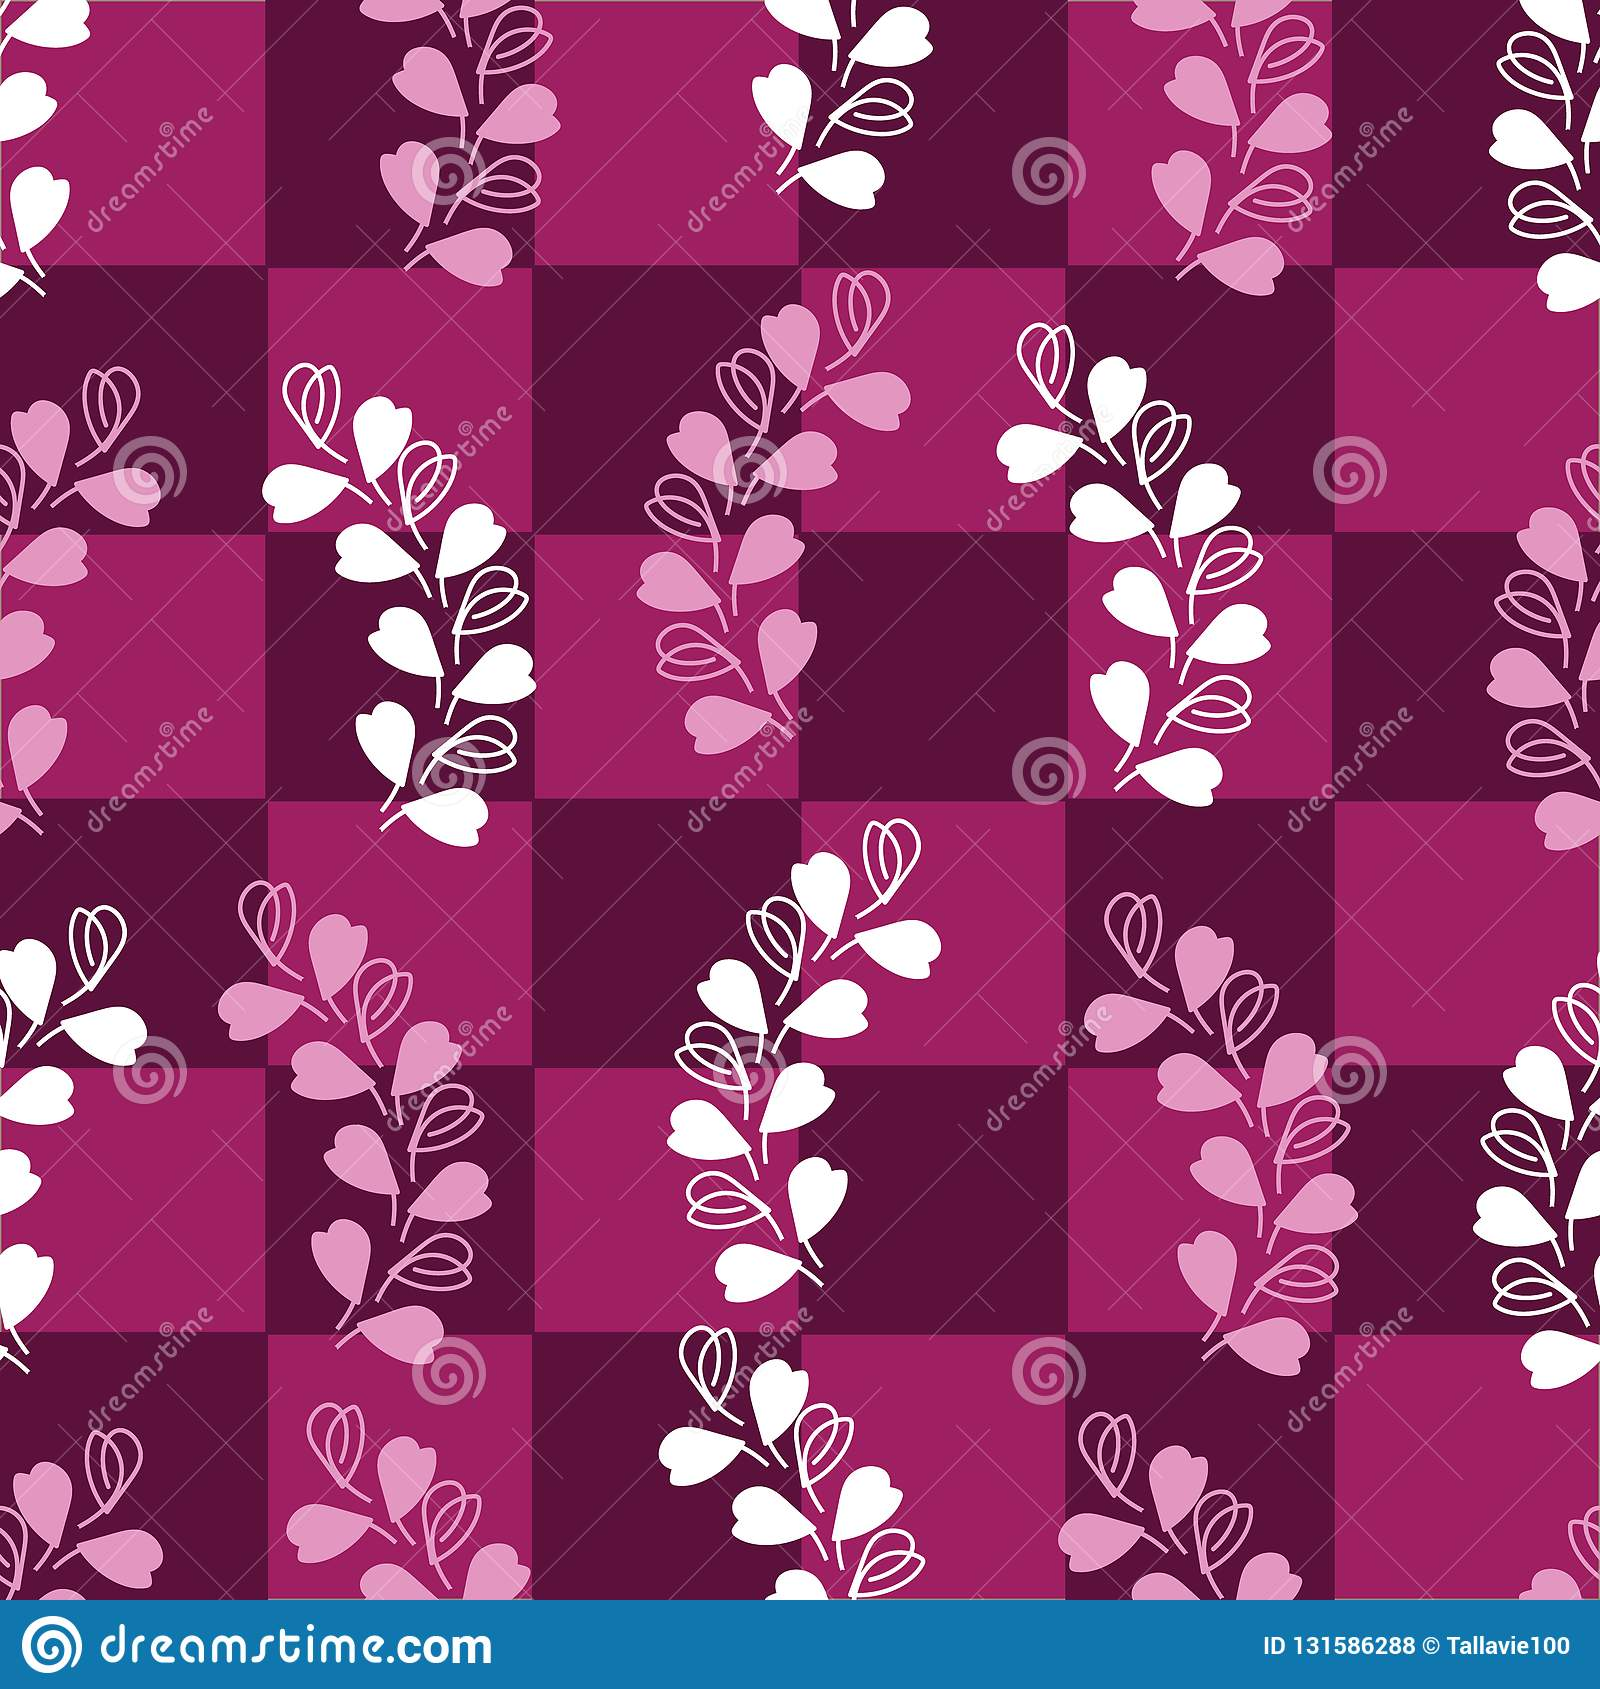 Abstract Lavender-Love in Parise Seamless Repeat Pattern on Maroon Background. Light Pink and White Colors.